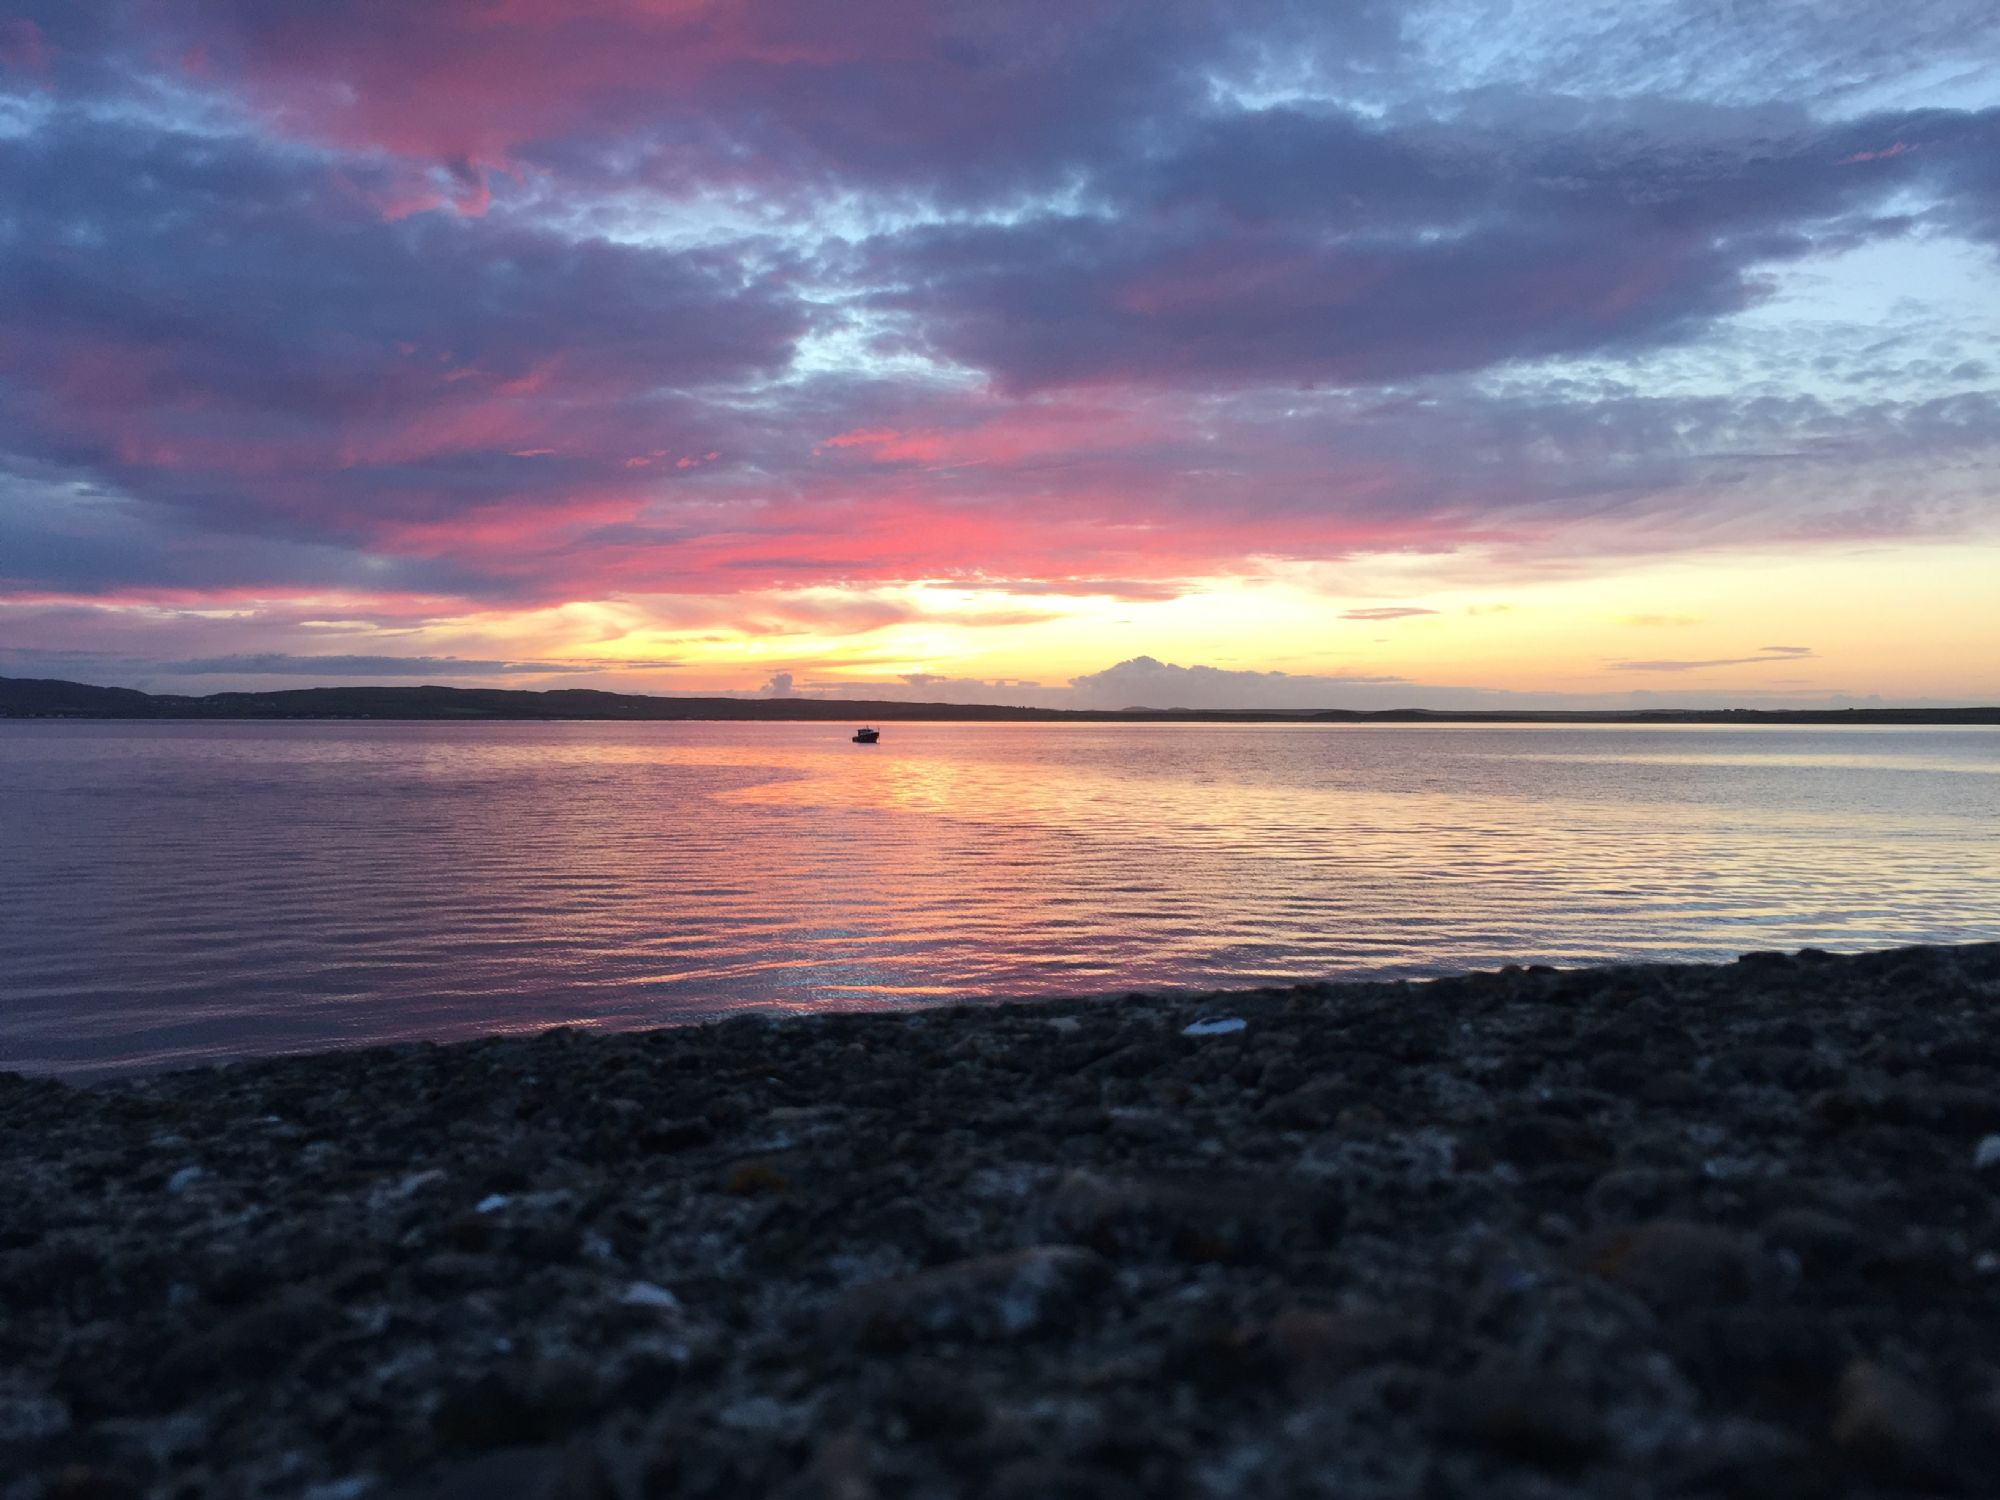 Sunset over Loch Indaal